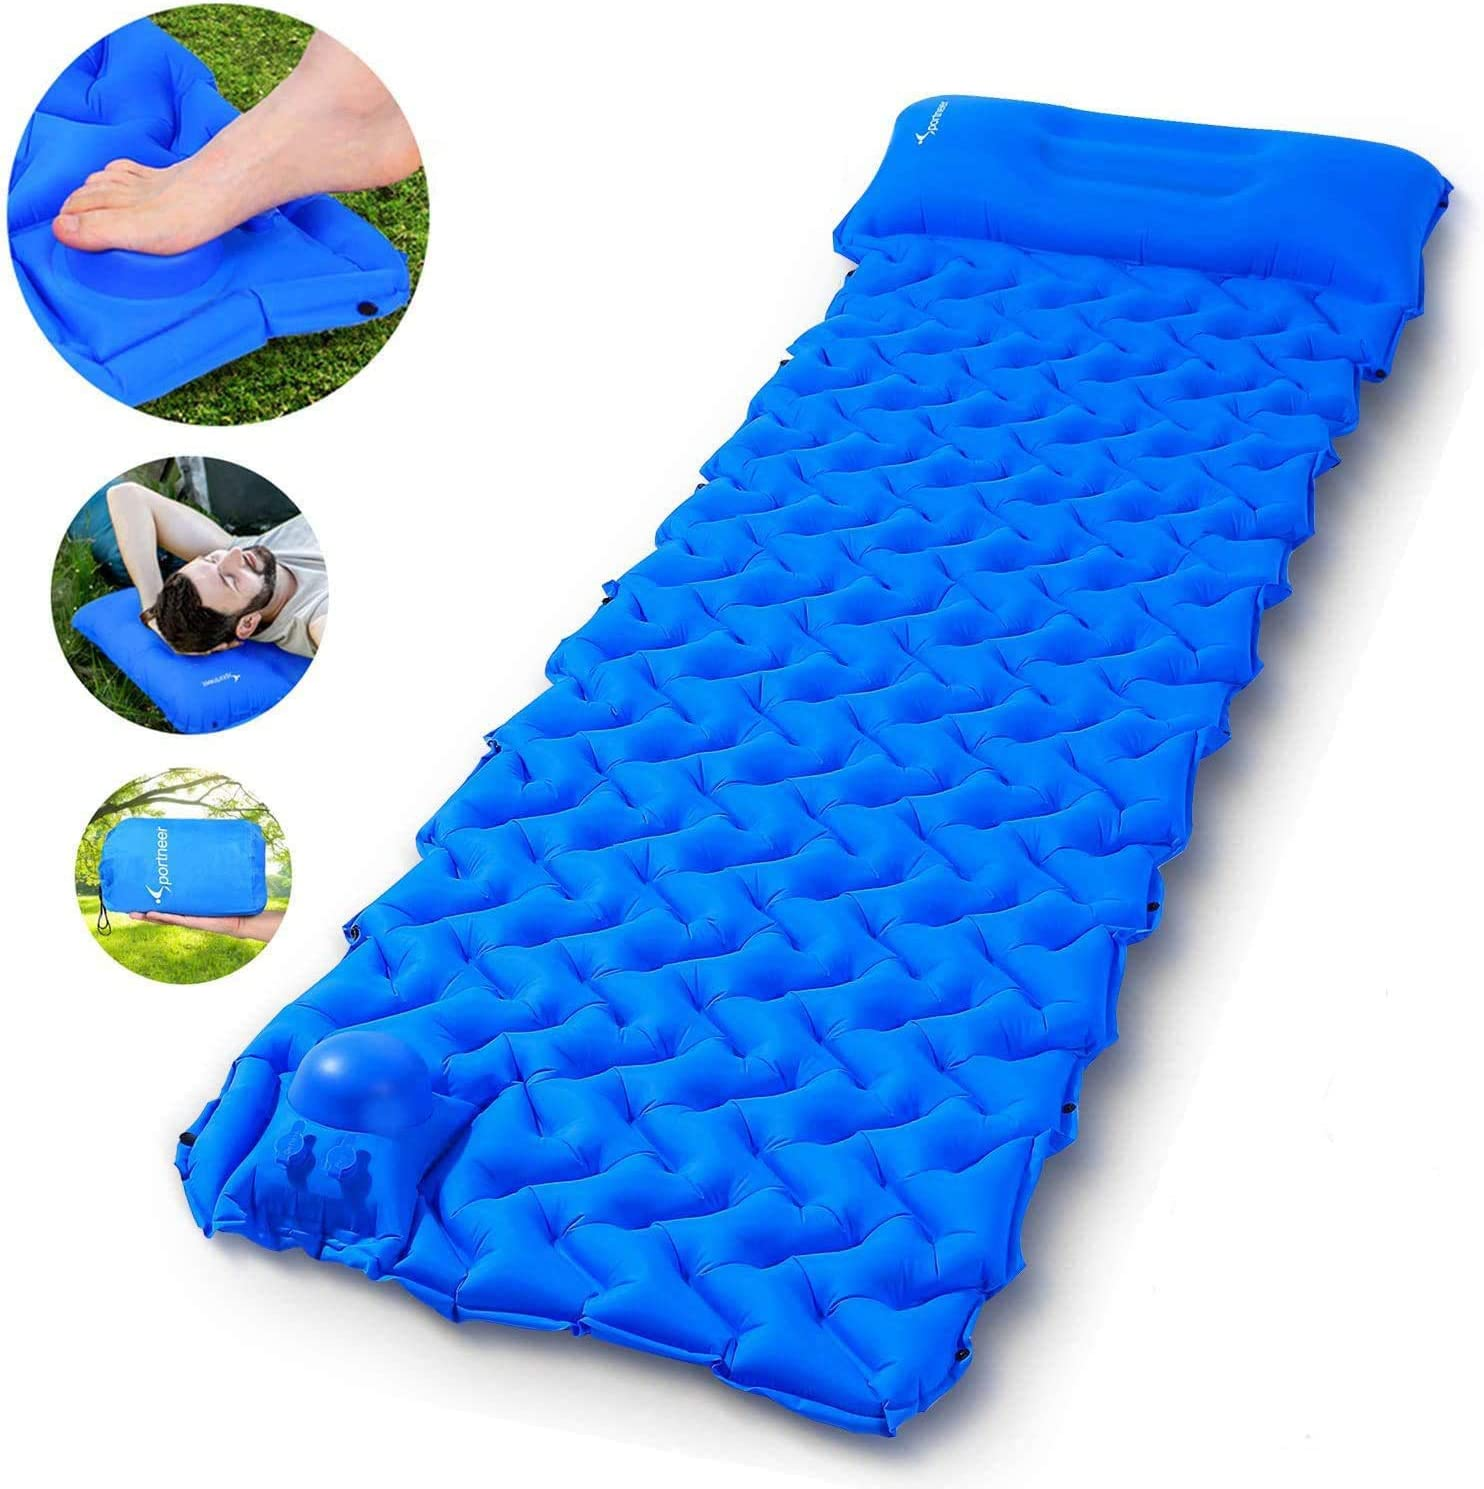 Sportneer Camping Sleeping Pad Built-in Pump